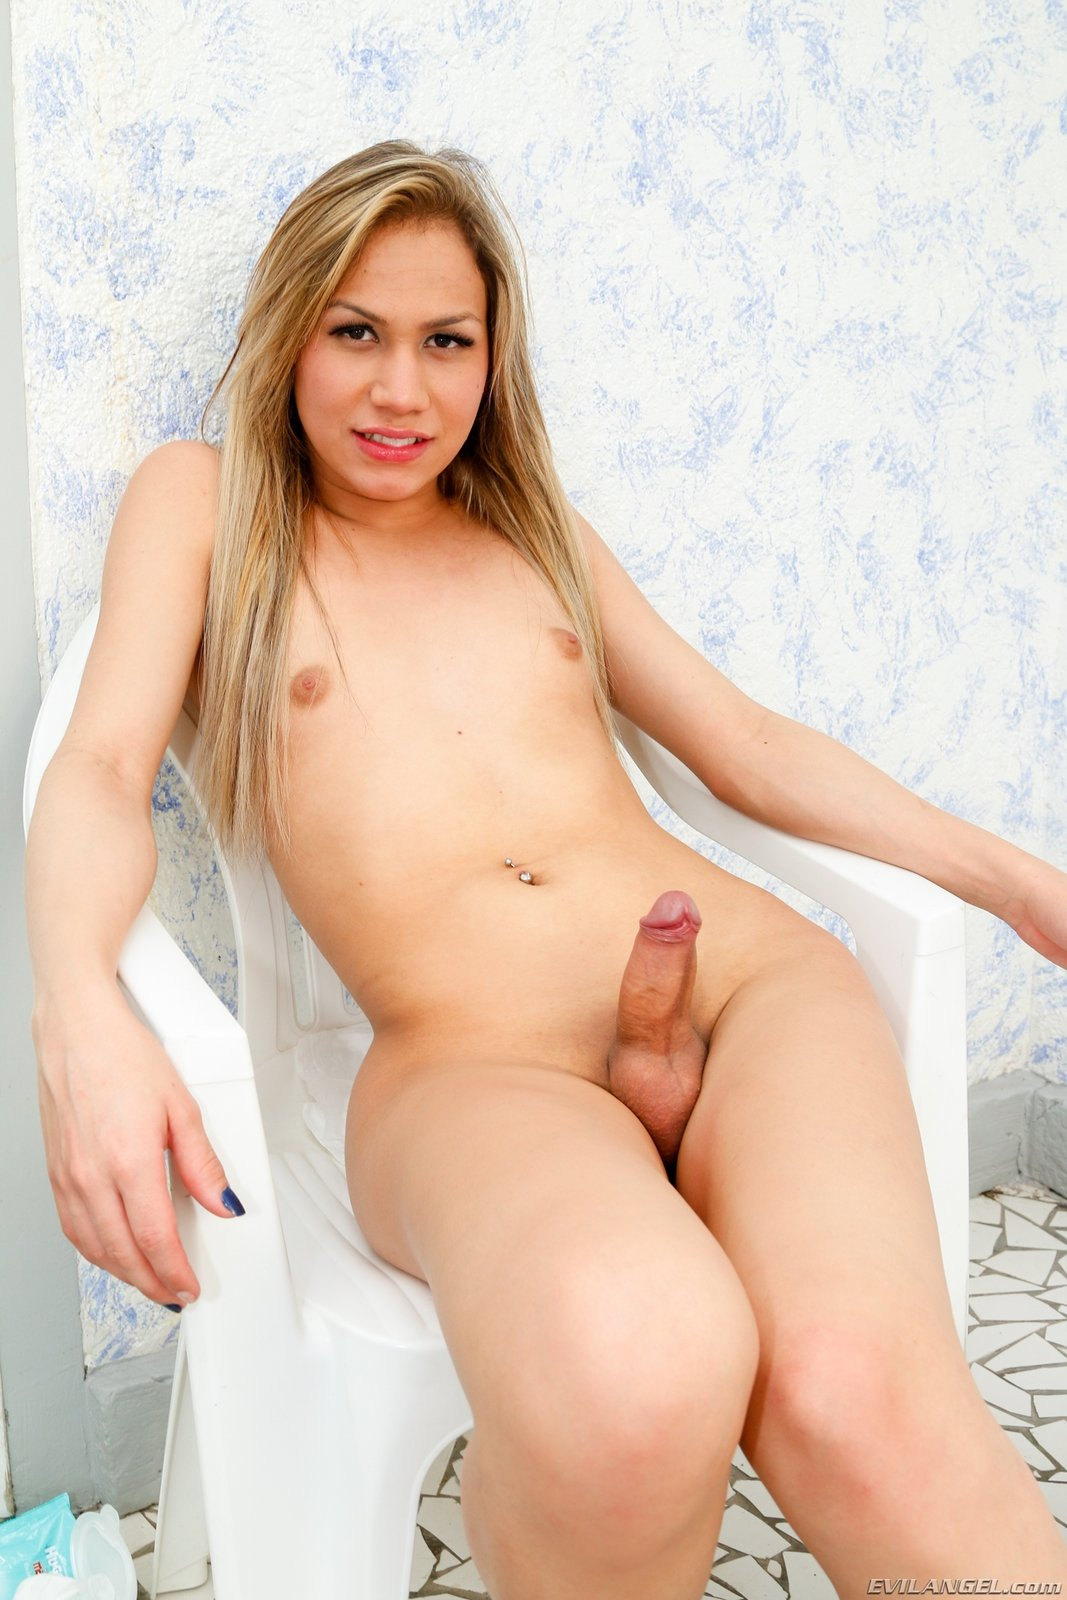 Young pretty chick gets wet and wild hitachi magic wand